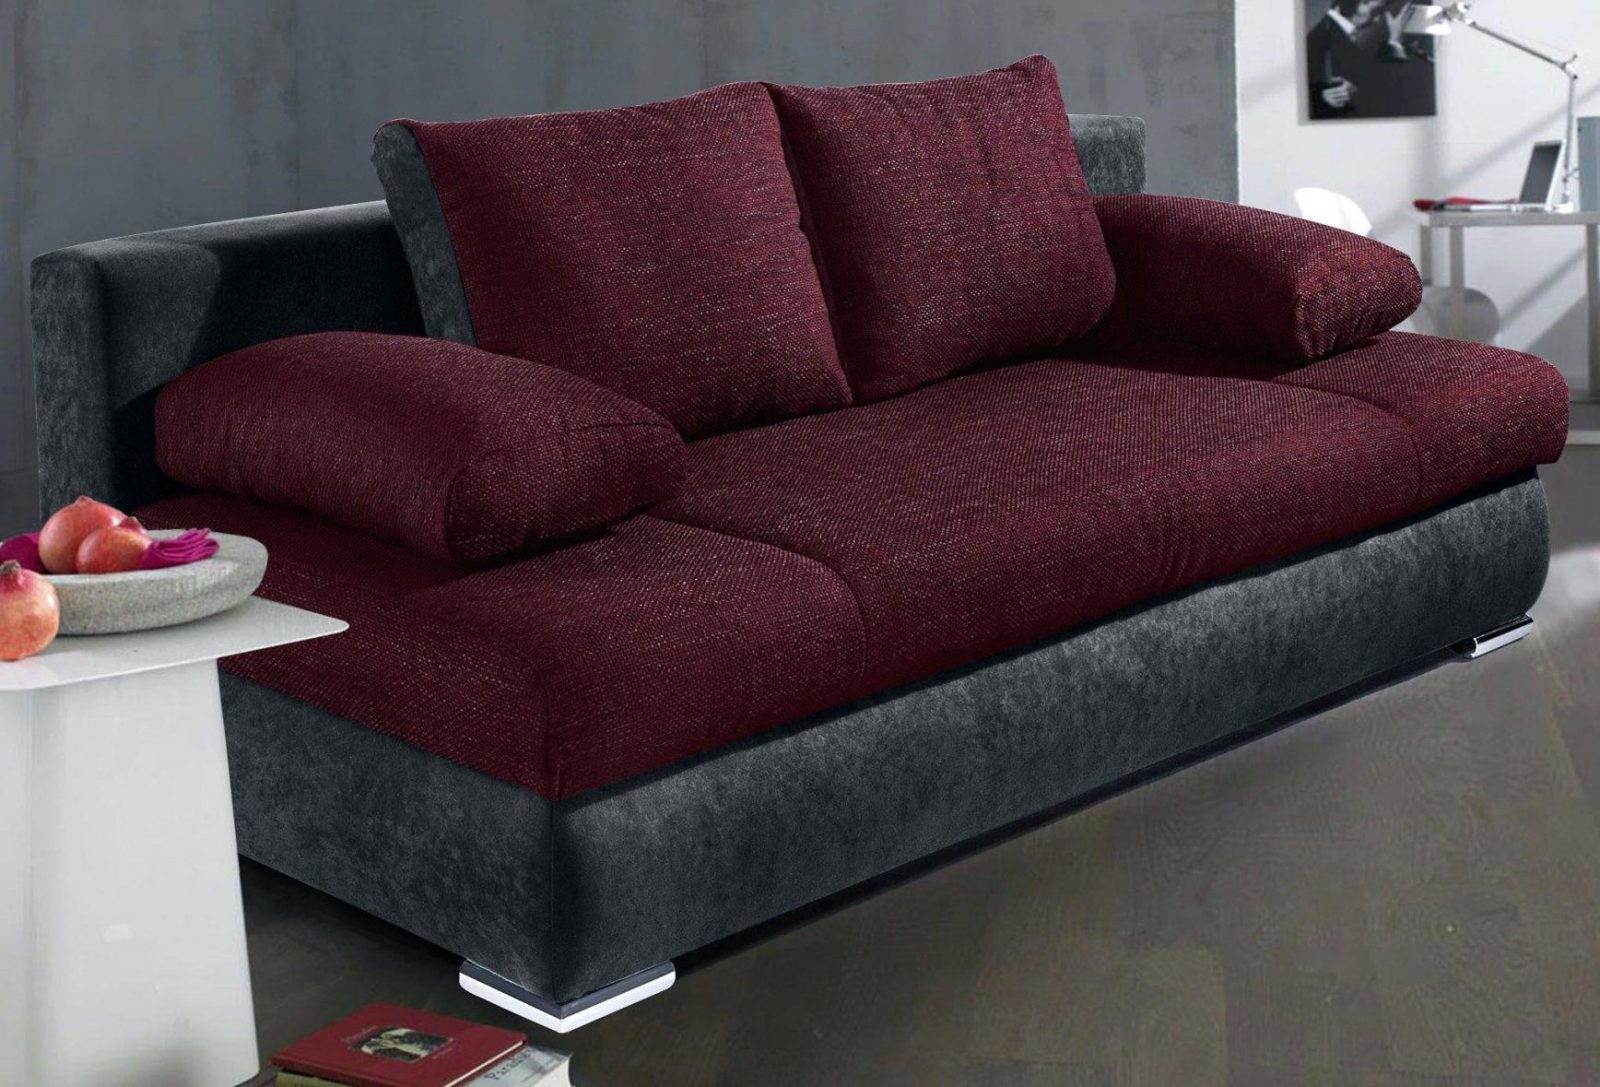 Sofa 3 Meter Breit Max Chesterfield 3 Sofa Couch 3 Meter Breit von Sofa 3 Meter Breit Bild